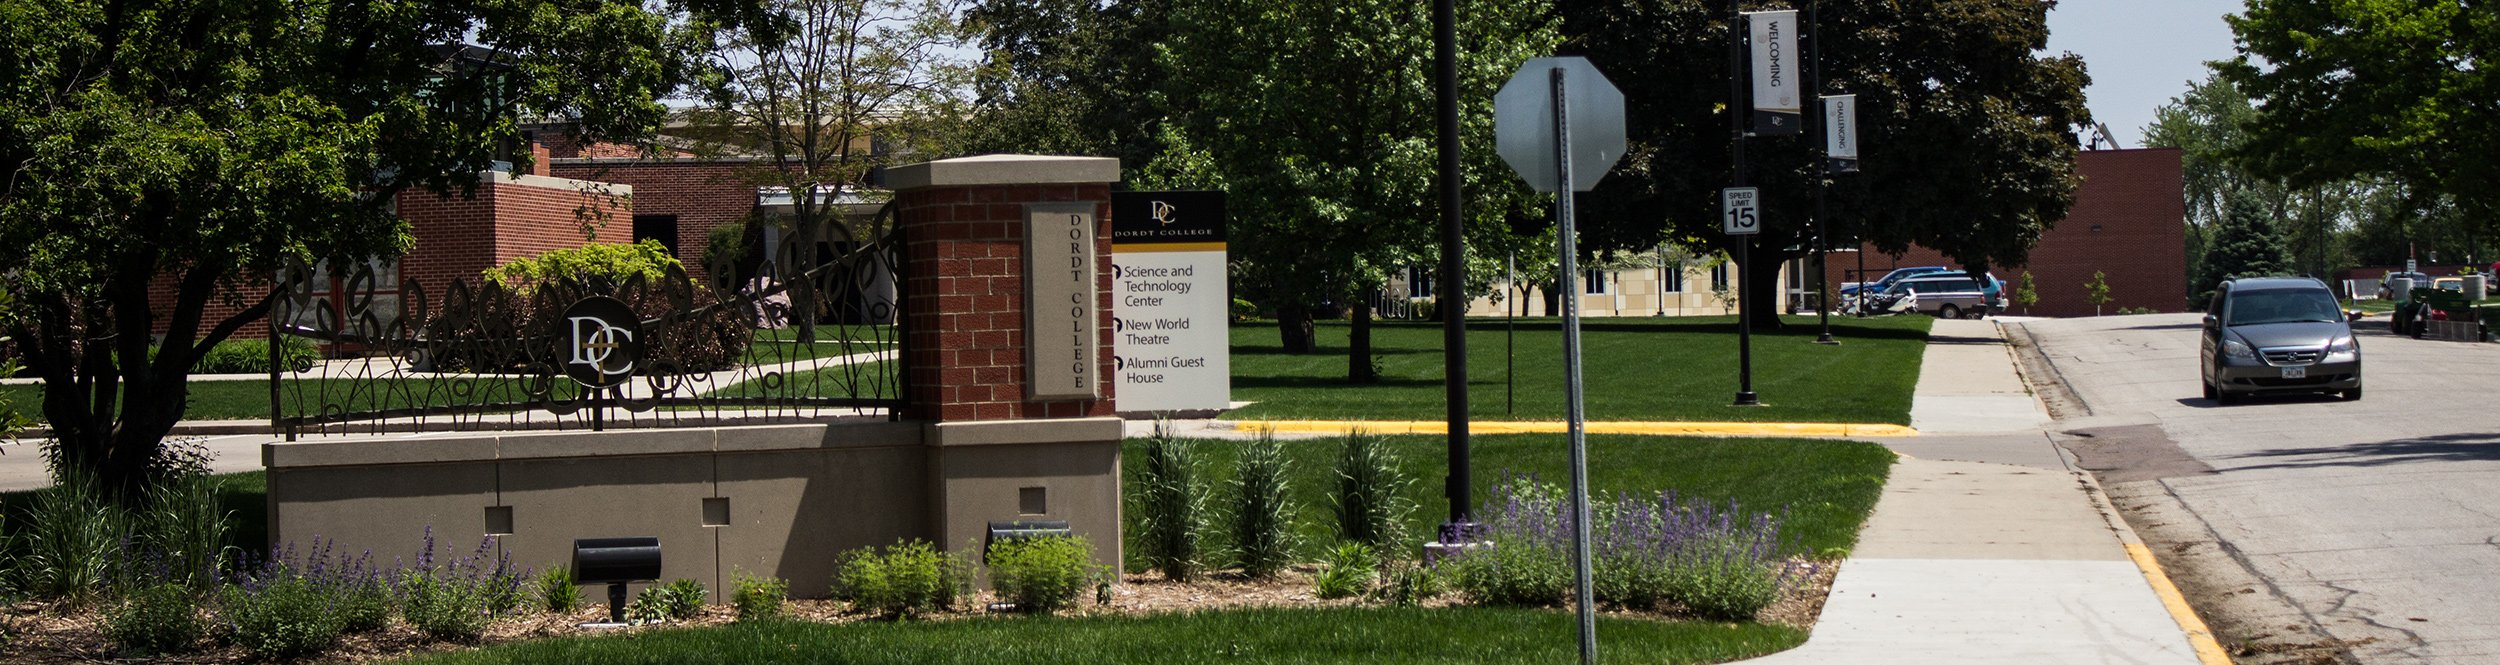 A brick sign with a Dordt logo on it.